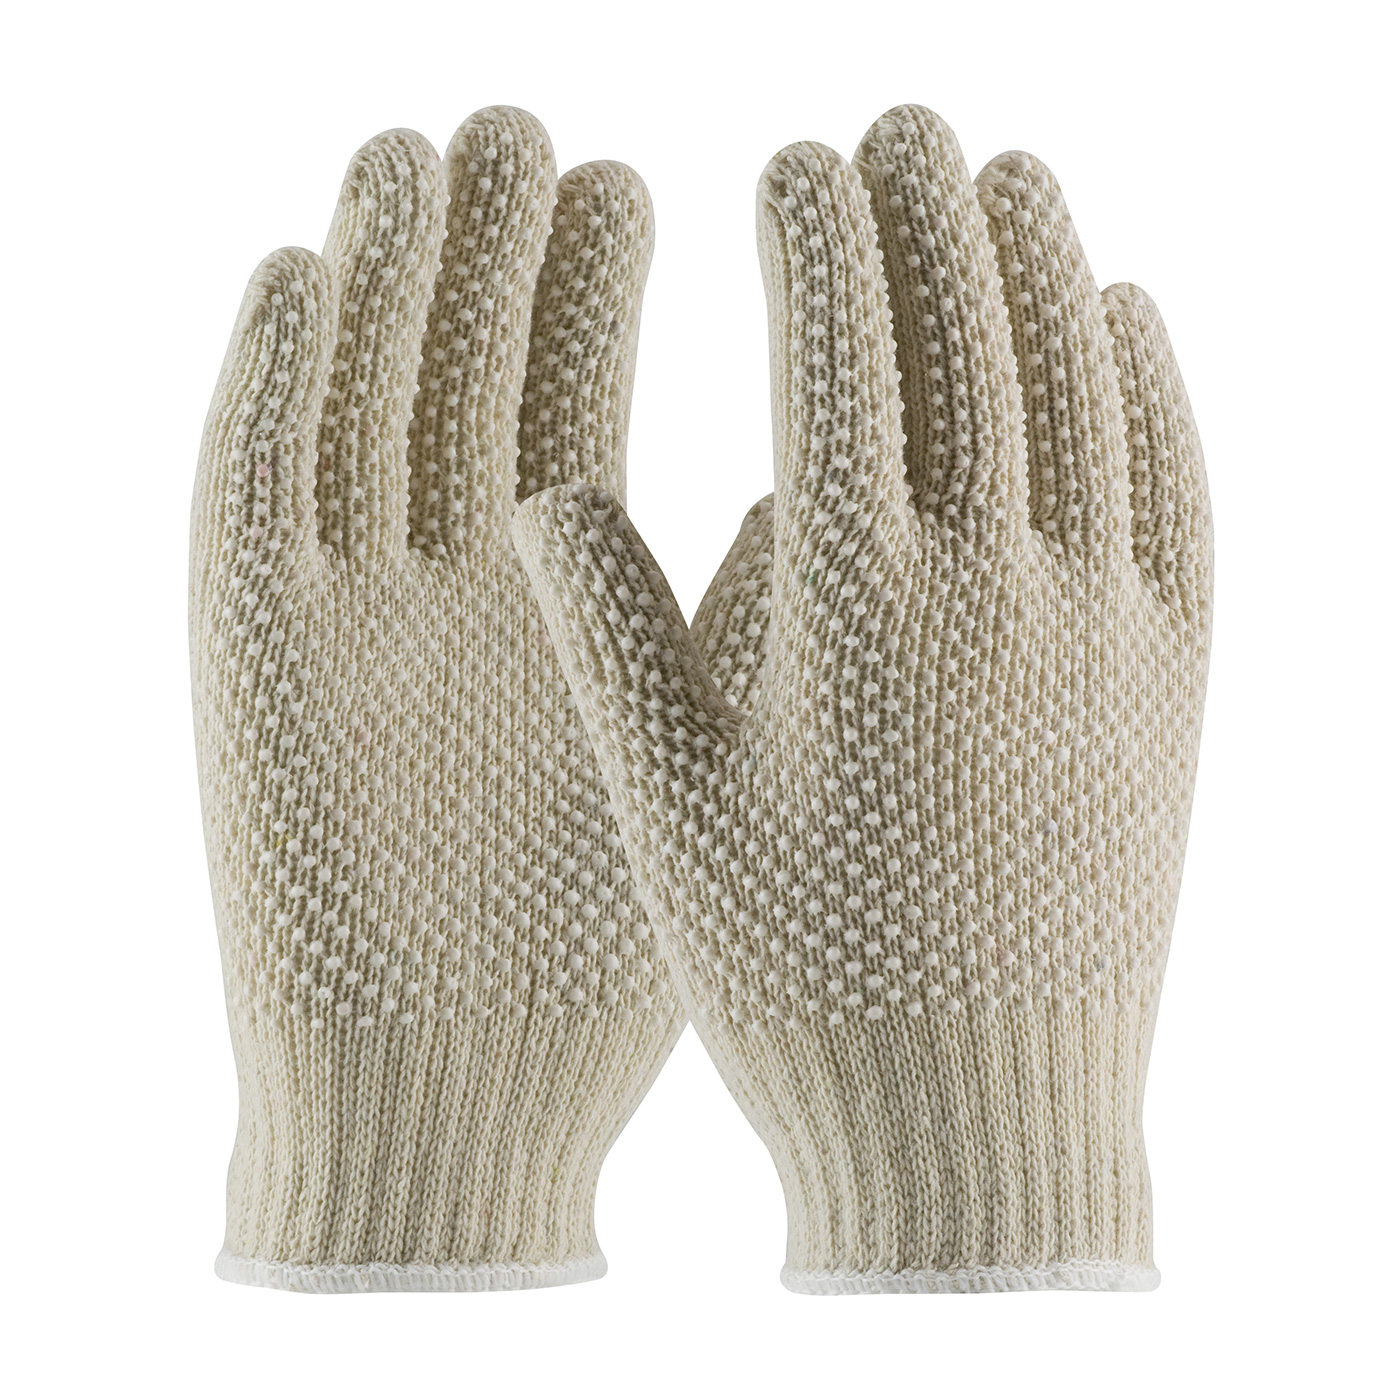 PIP® 7 Gauge Regular Weight Seamless Knit Cotton / Polyester Glove with Double-Sided PVC Dot Grip -  #36-110PDD-WT